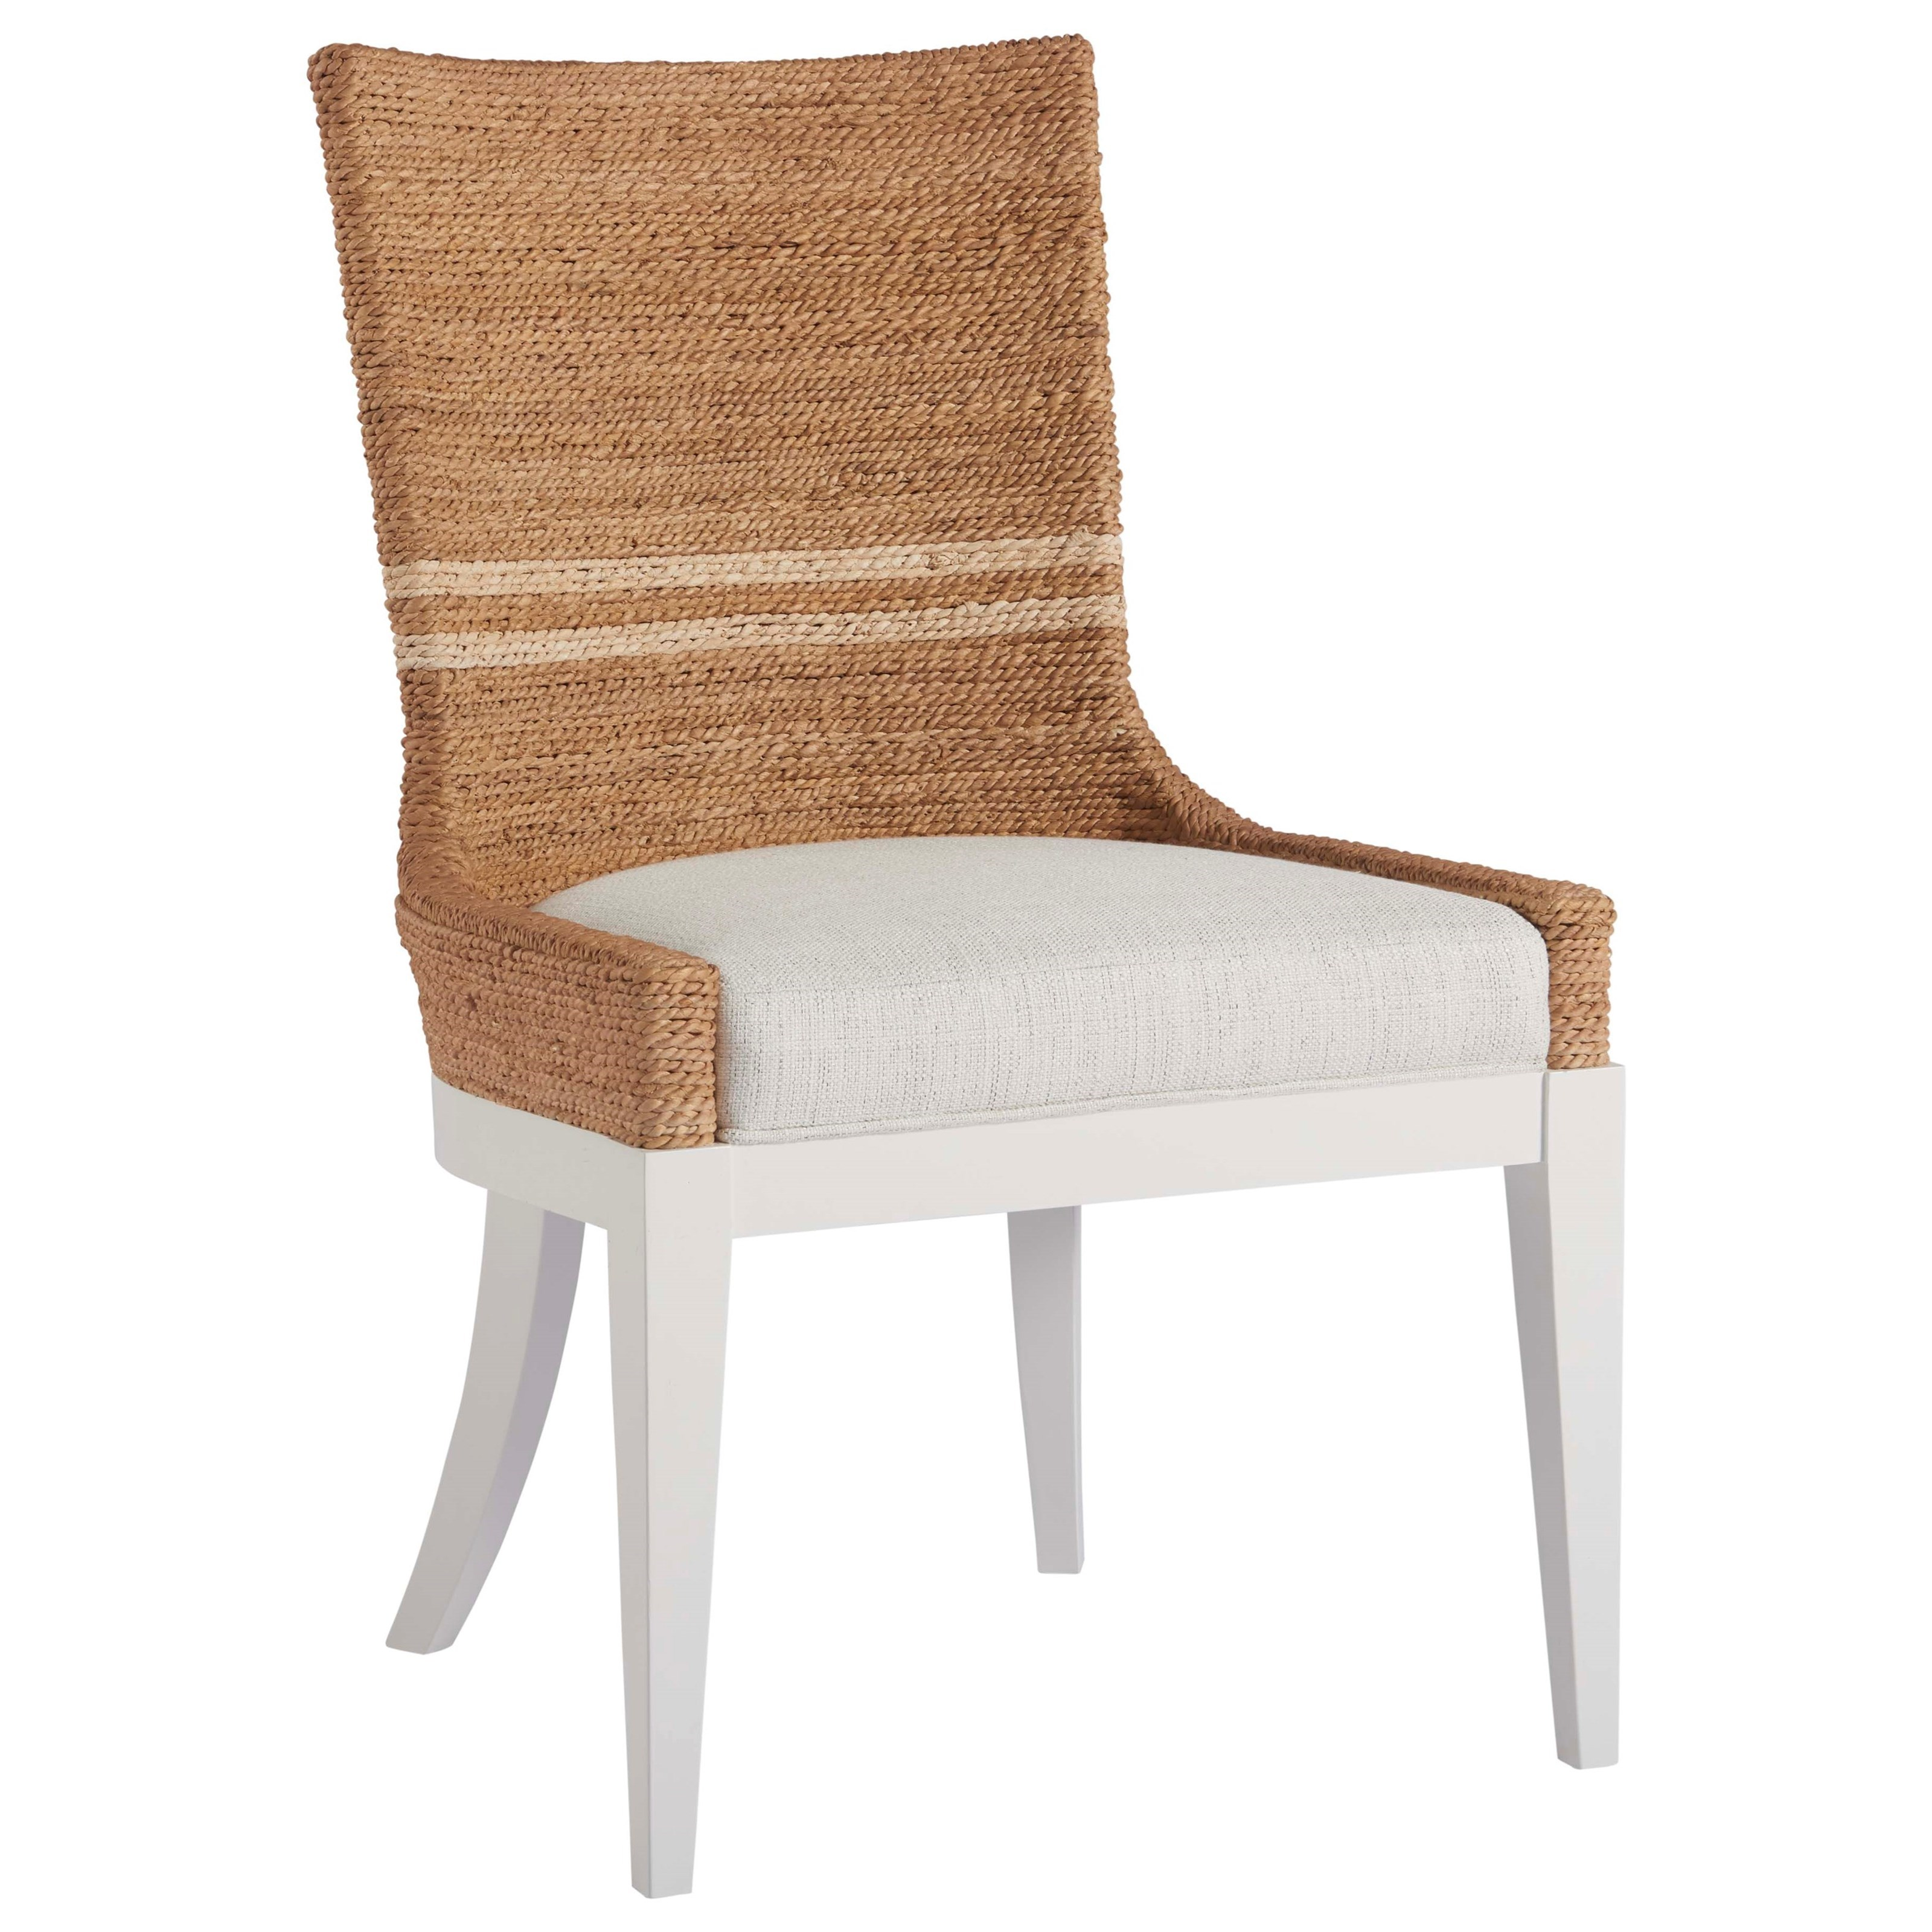 Coastal Living Home - Escape Siesta Key Dining Chair by Universal at Baer's Furniture